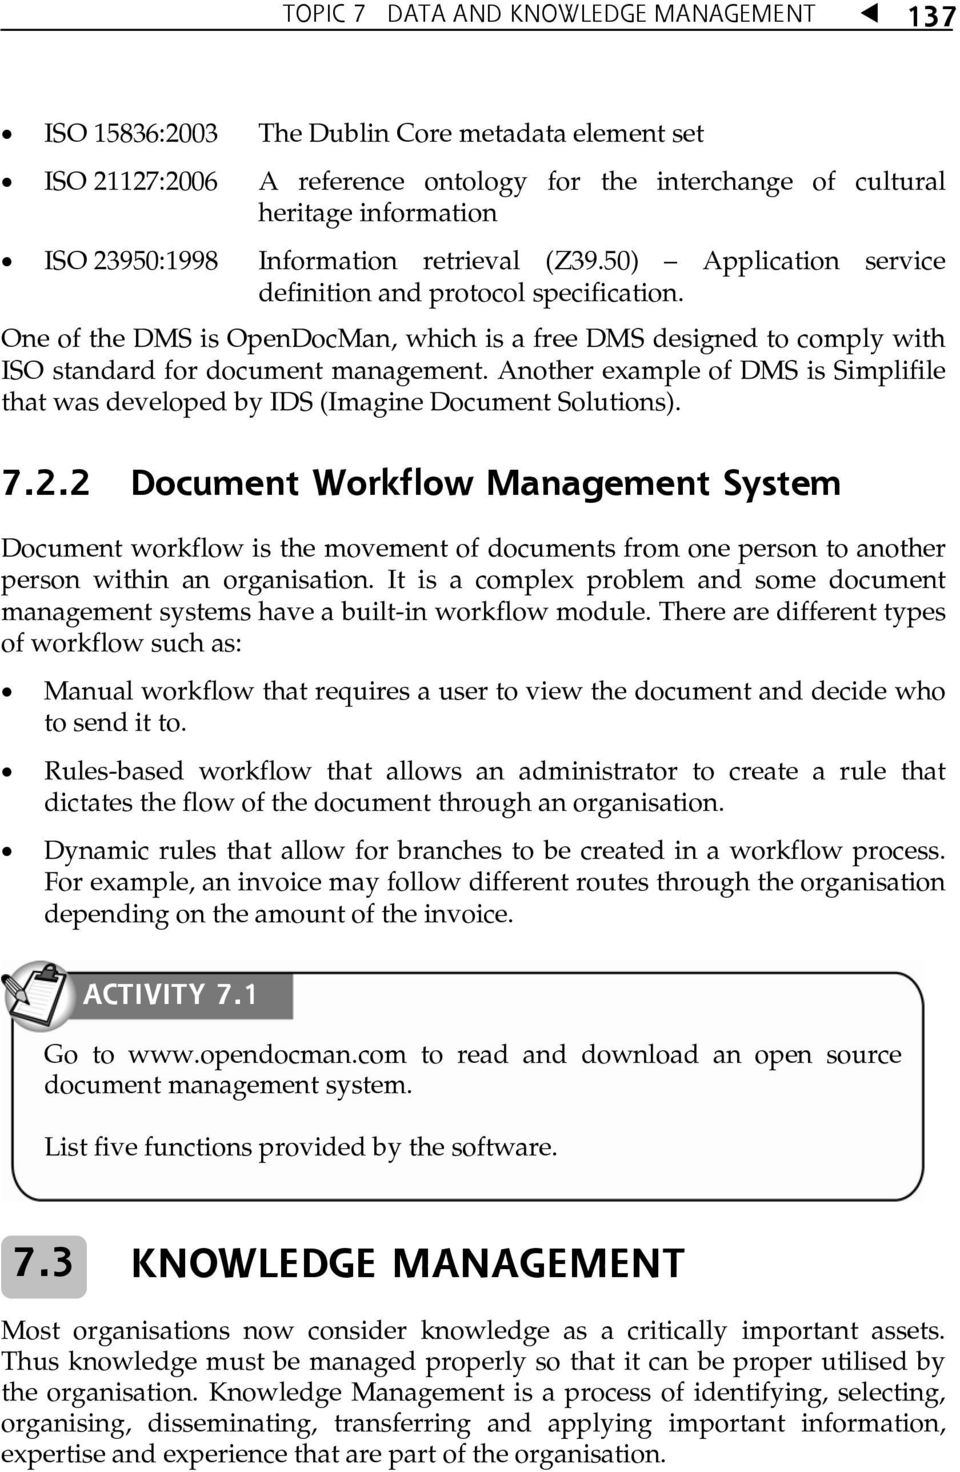 One of the DMS is OpenDocMan, which is a free DMS designed to comply with ISO standard for document management.